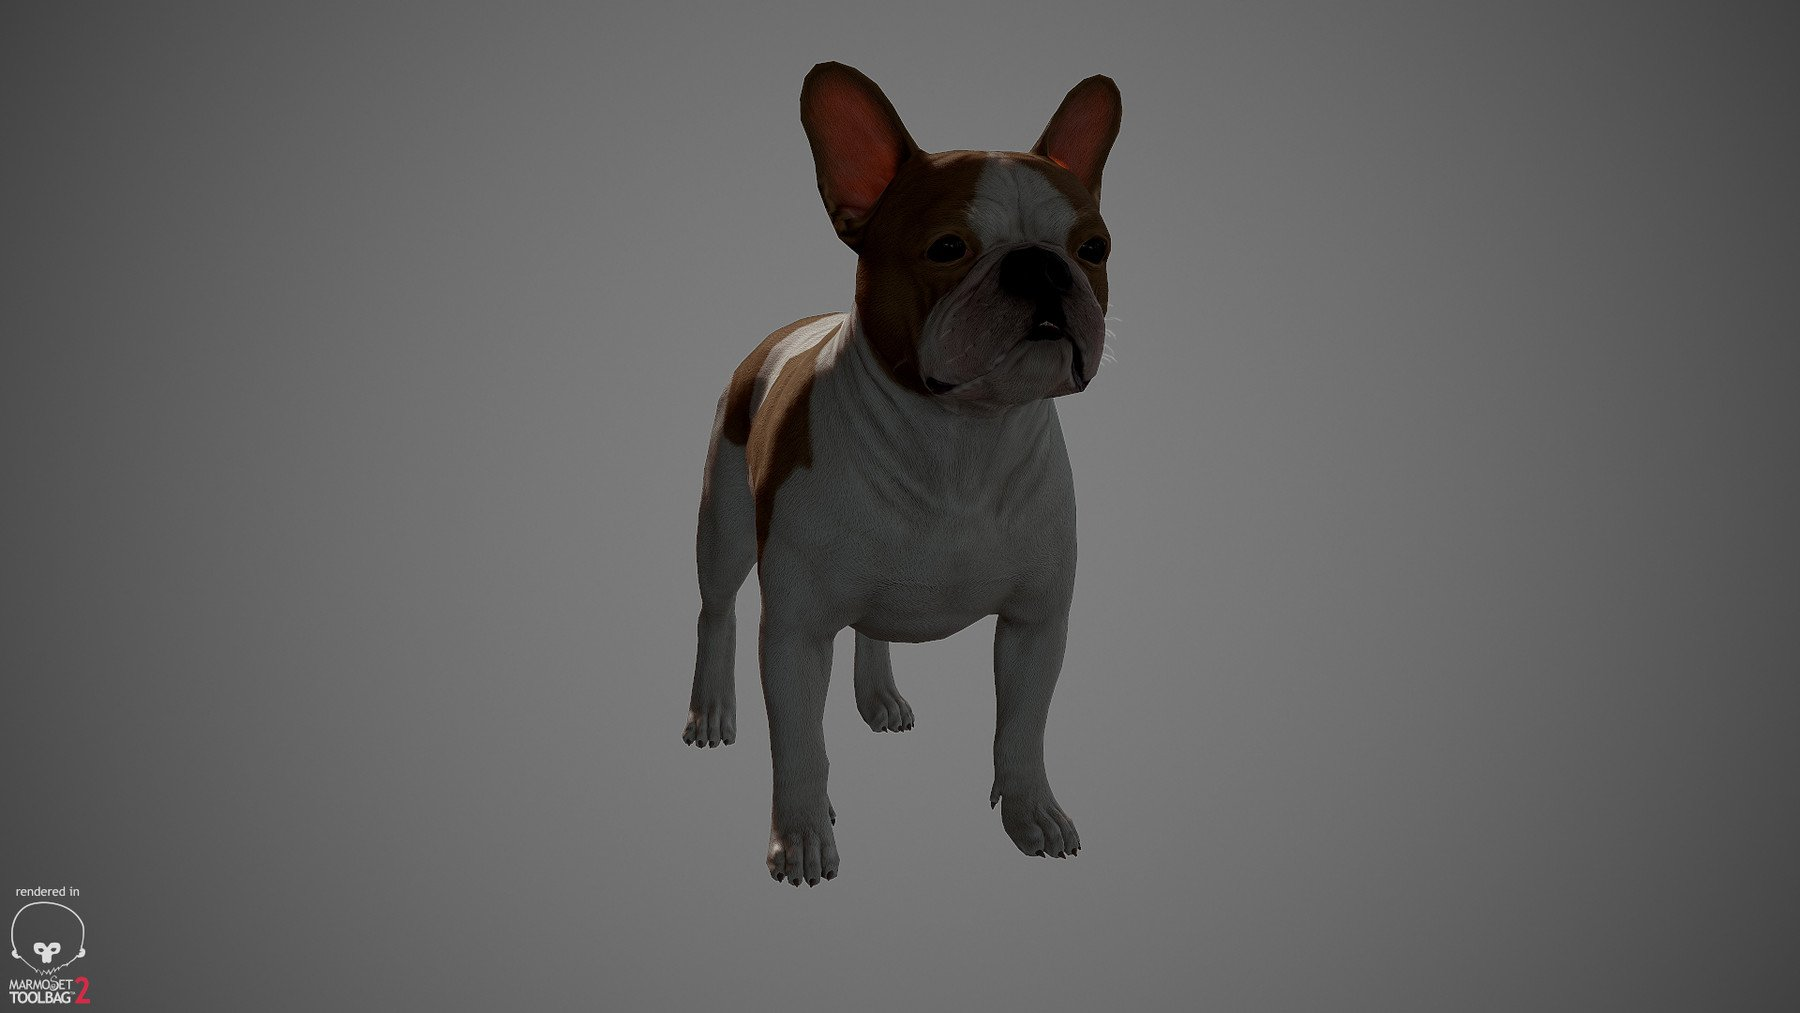 Frenchbulldog by alexlashko marmoset 10